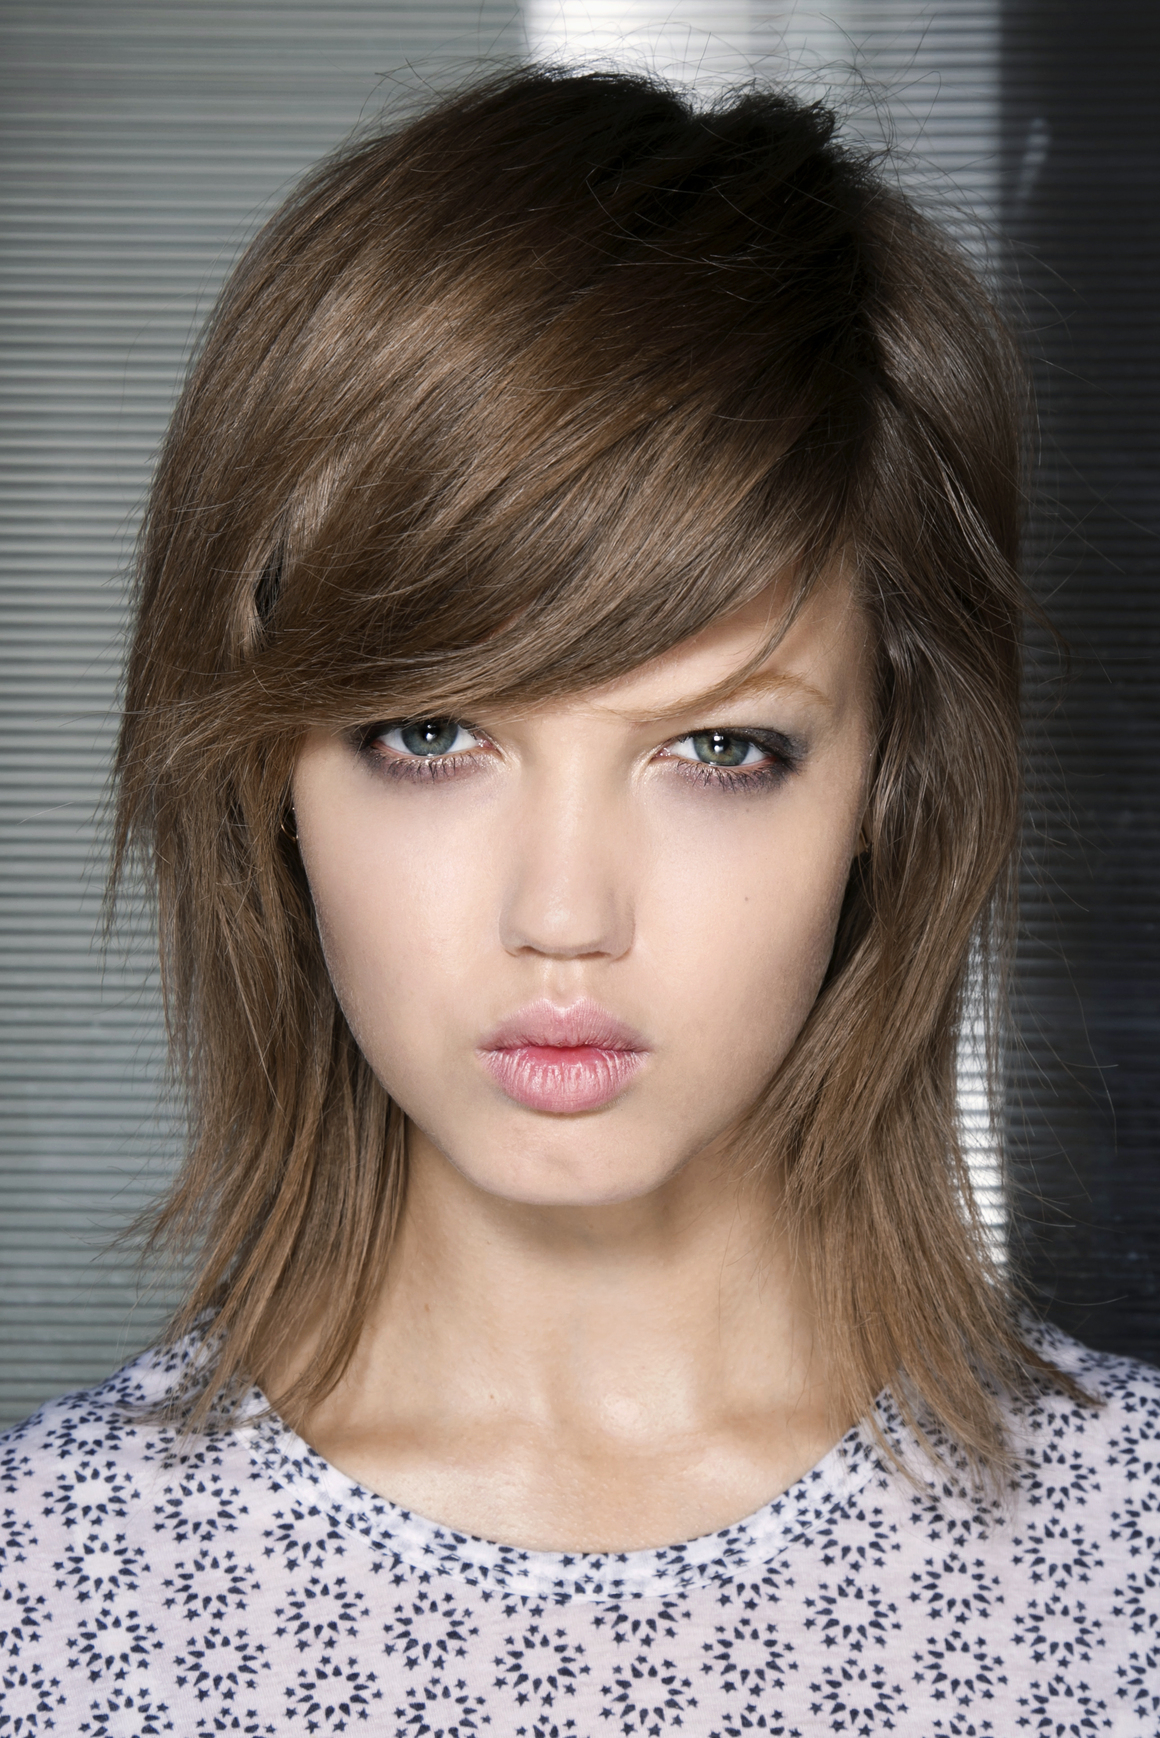 Cute Short Haircuts With Side Bangs With Short Haircuts With Side Fringe (View 5 of 25)